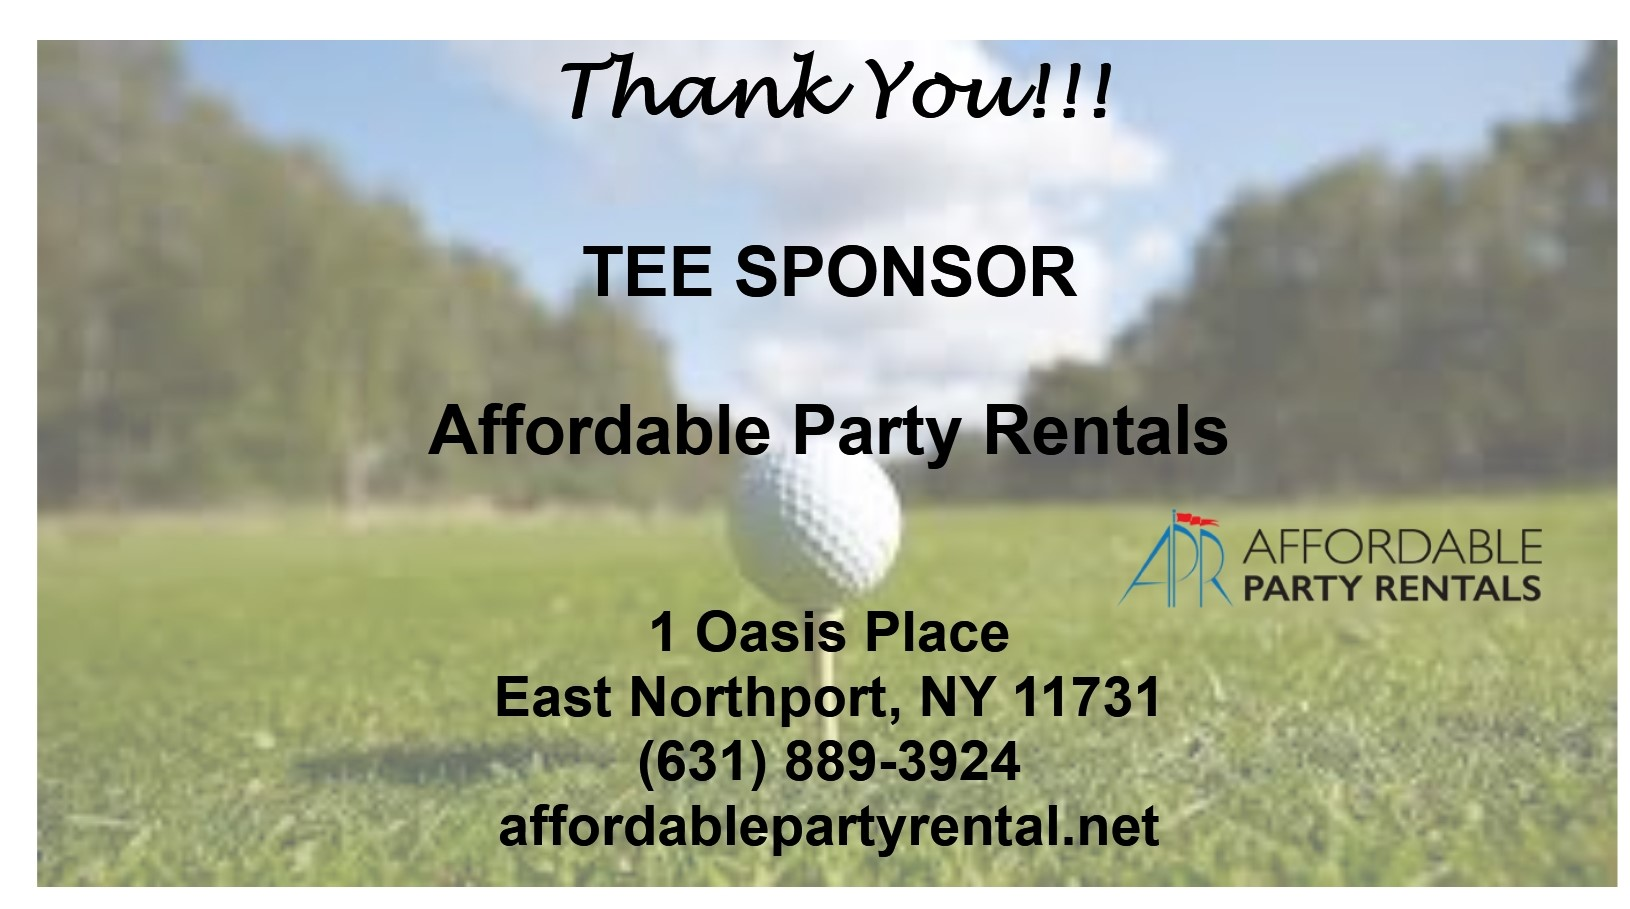 Affordable Party Rentals